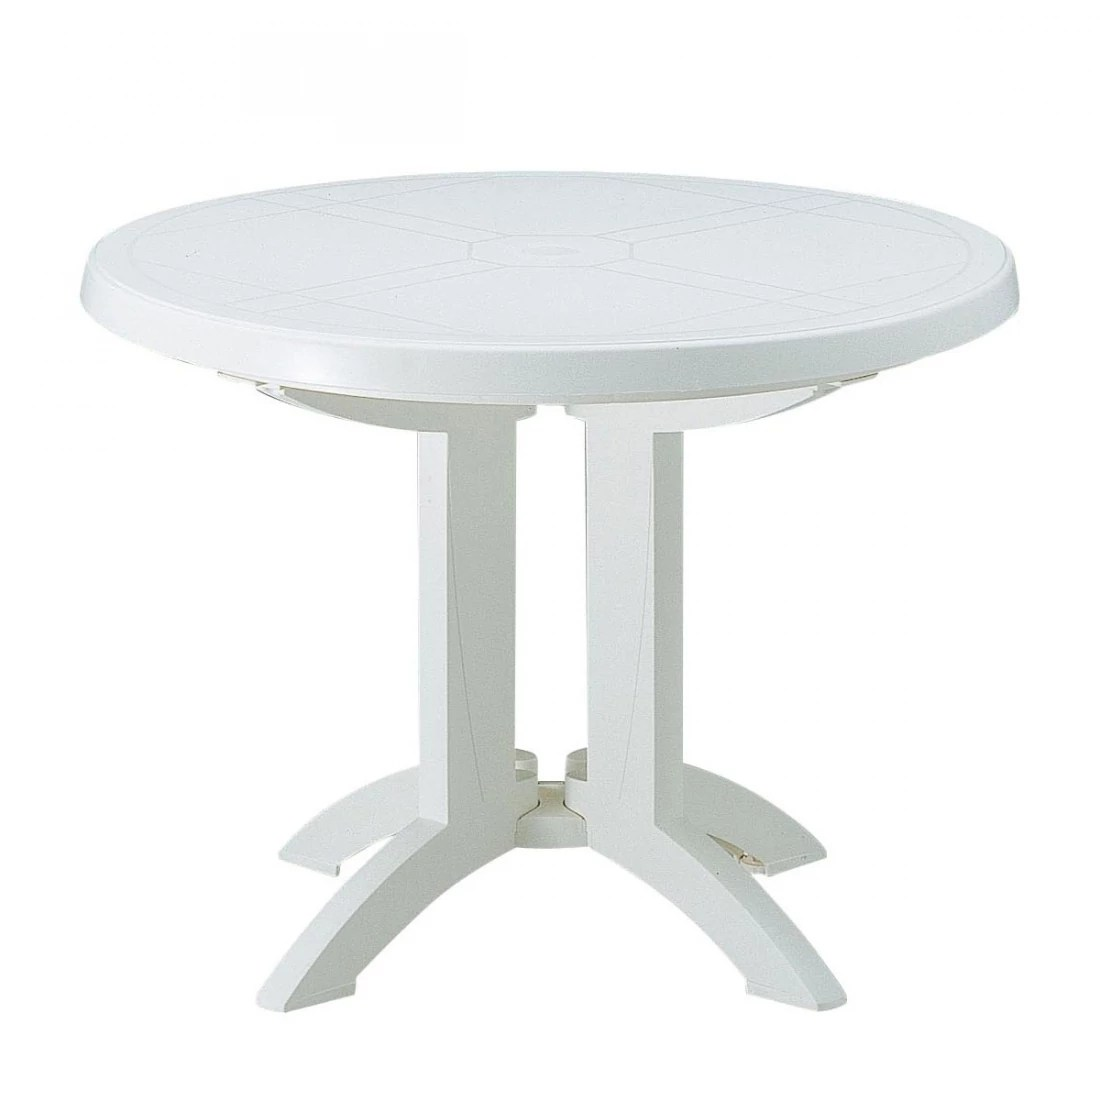 Table Pvc Exterieur Table Ronde De Jardin Vega Grosfillex